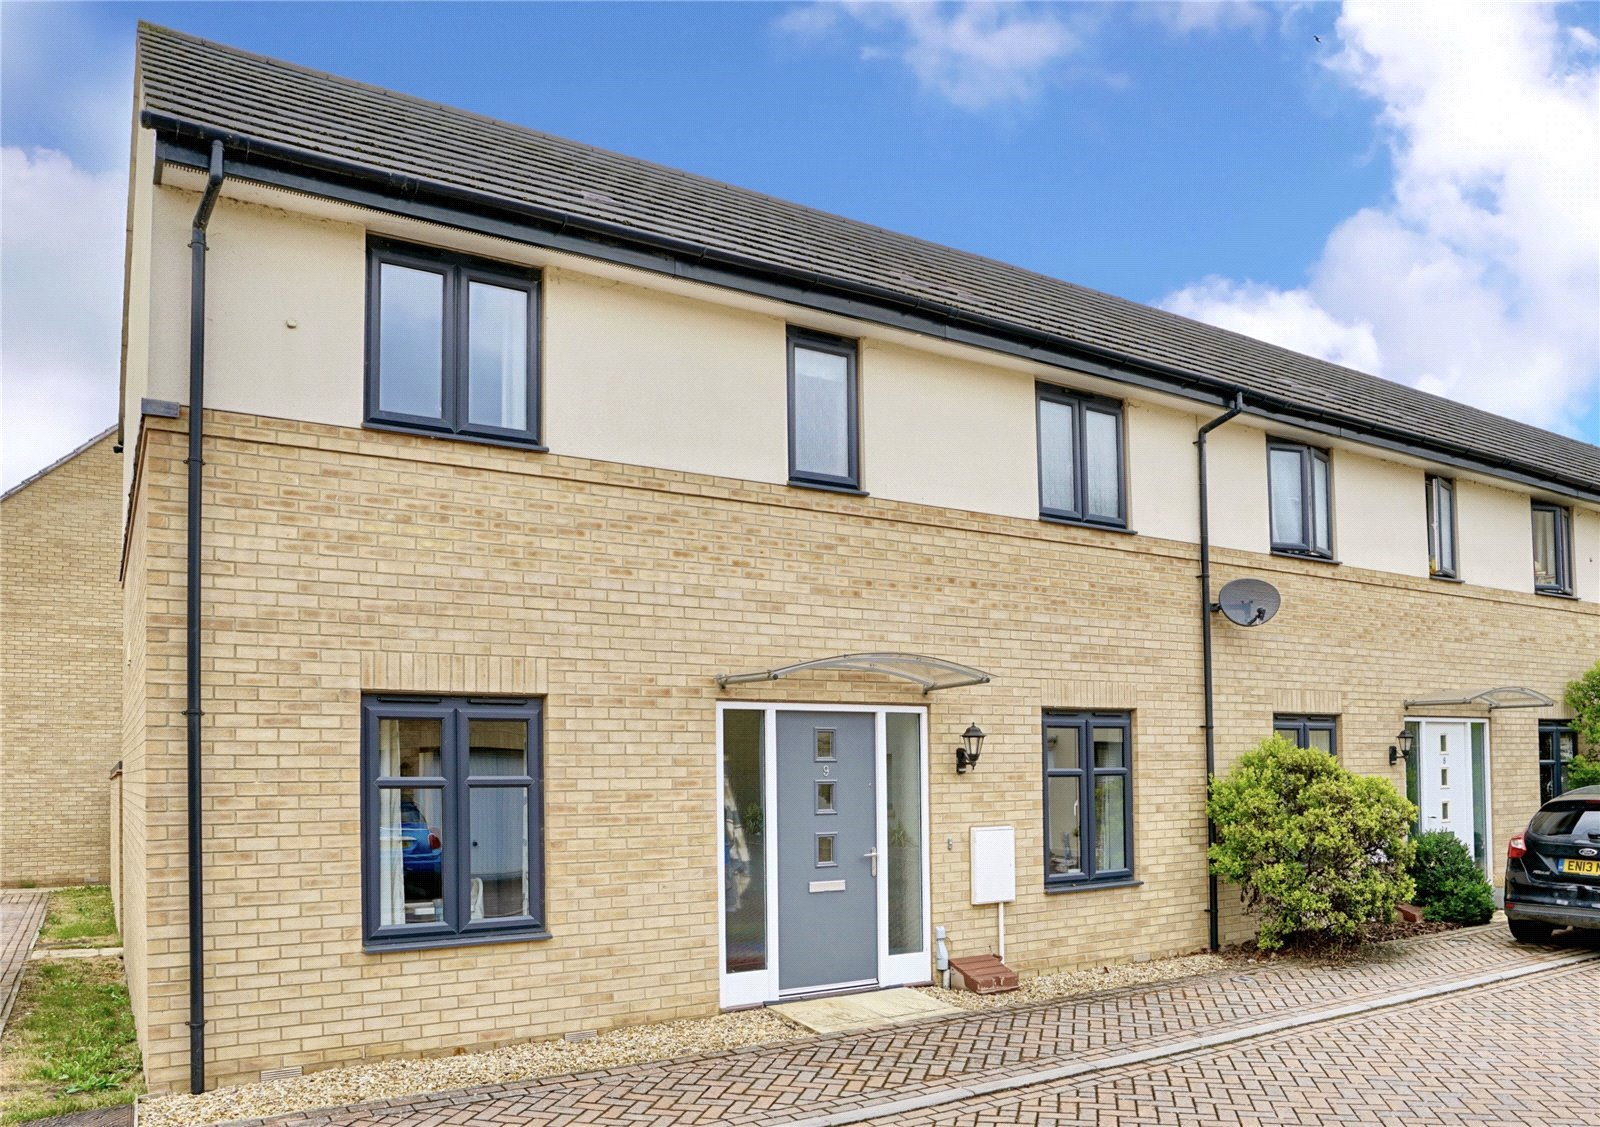 3 bed house for sale in St. Ives, PE27 5DL, PE27